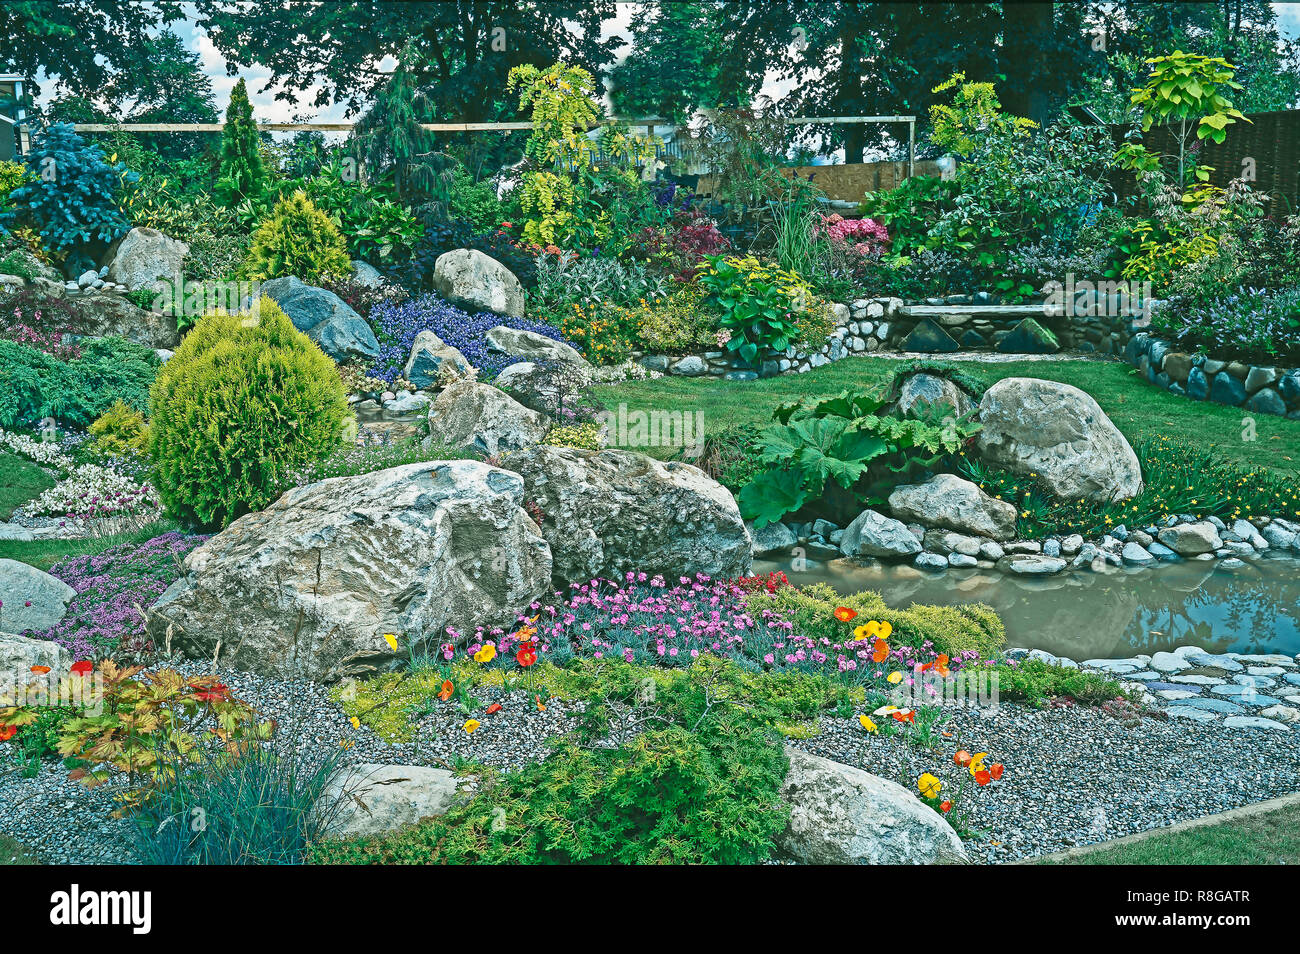 Rockery and water garden with mixed planting of alpine flowers, plants and shrubs. Stock Photo